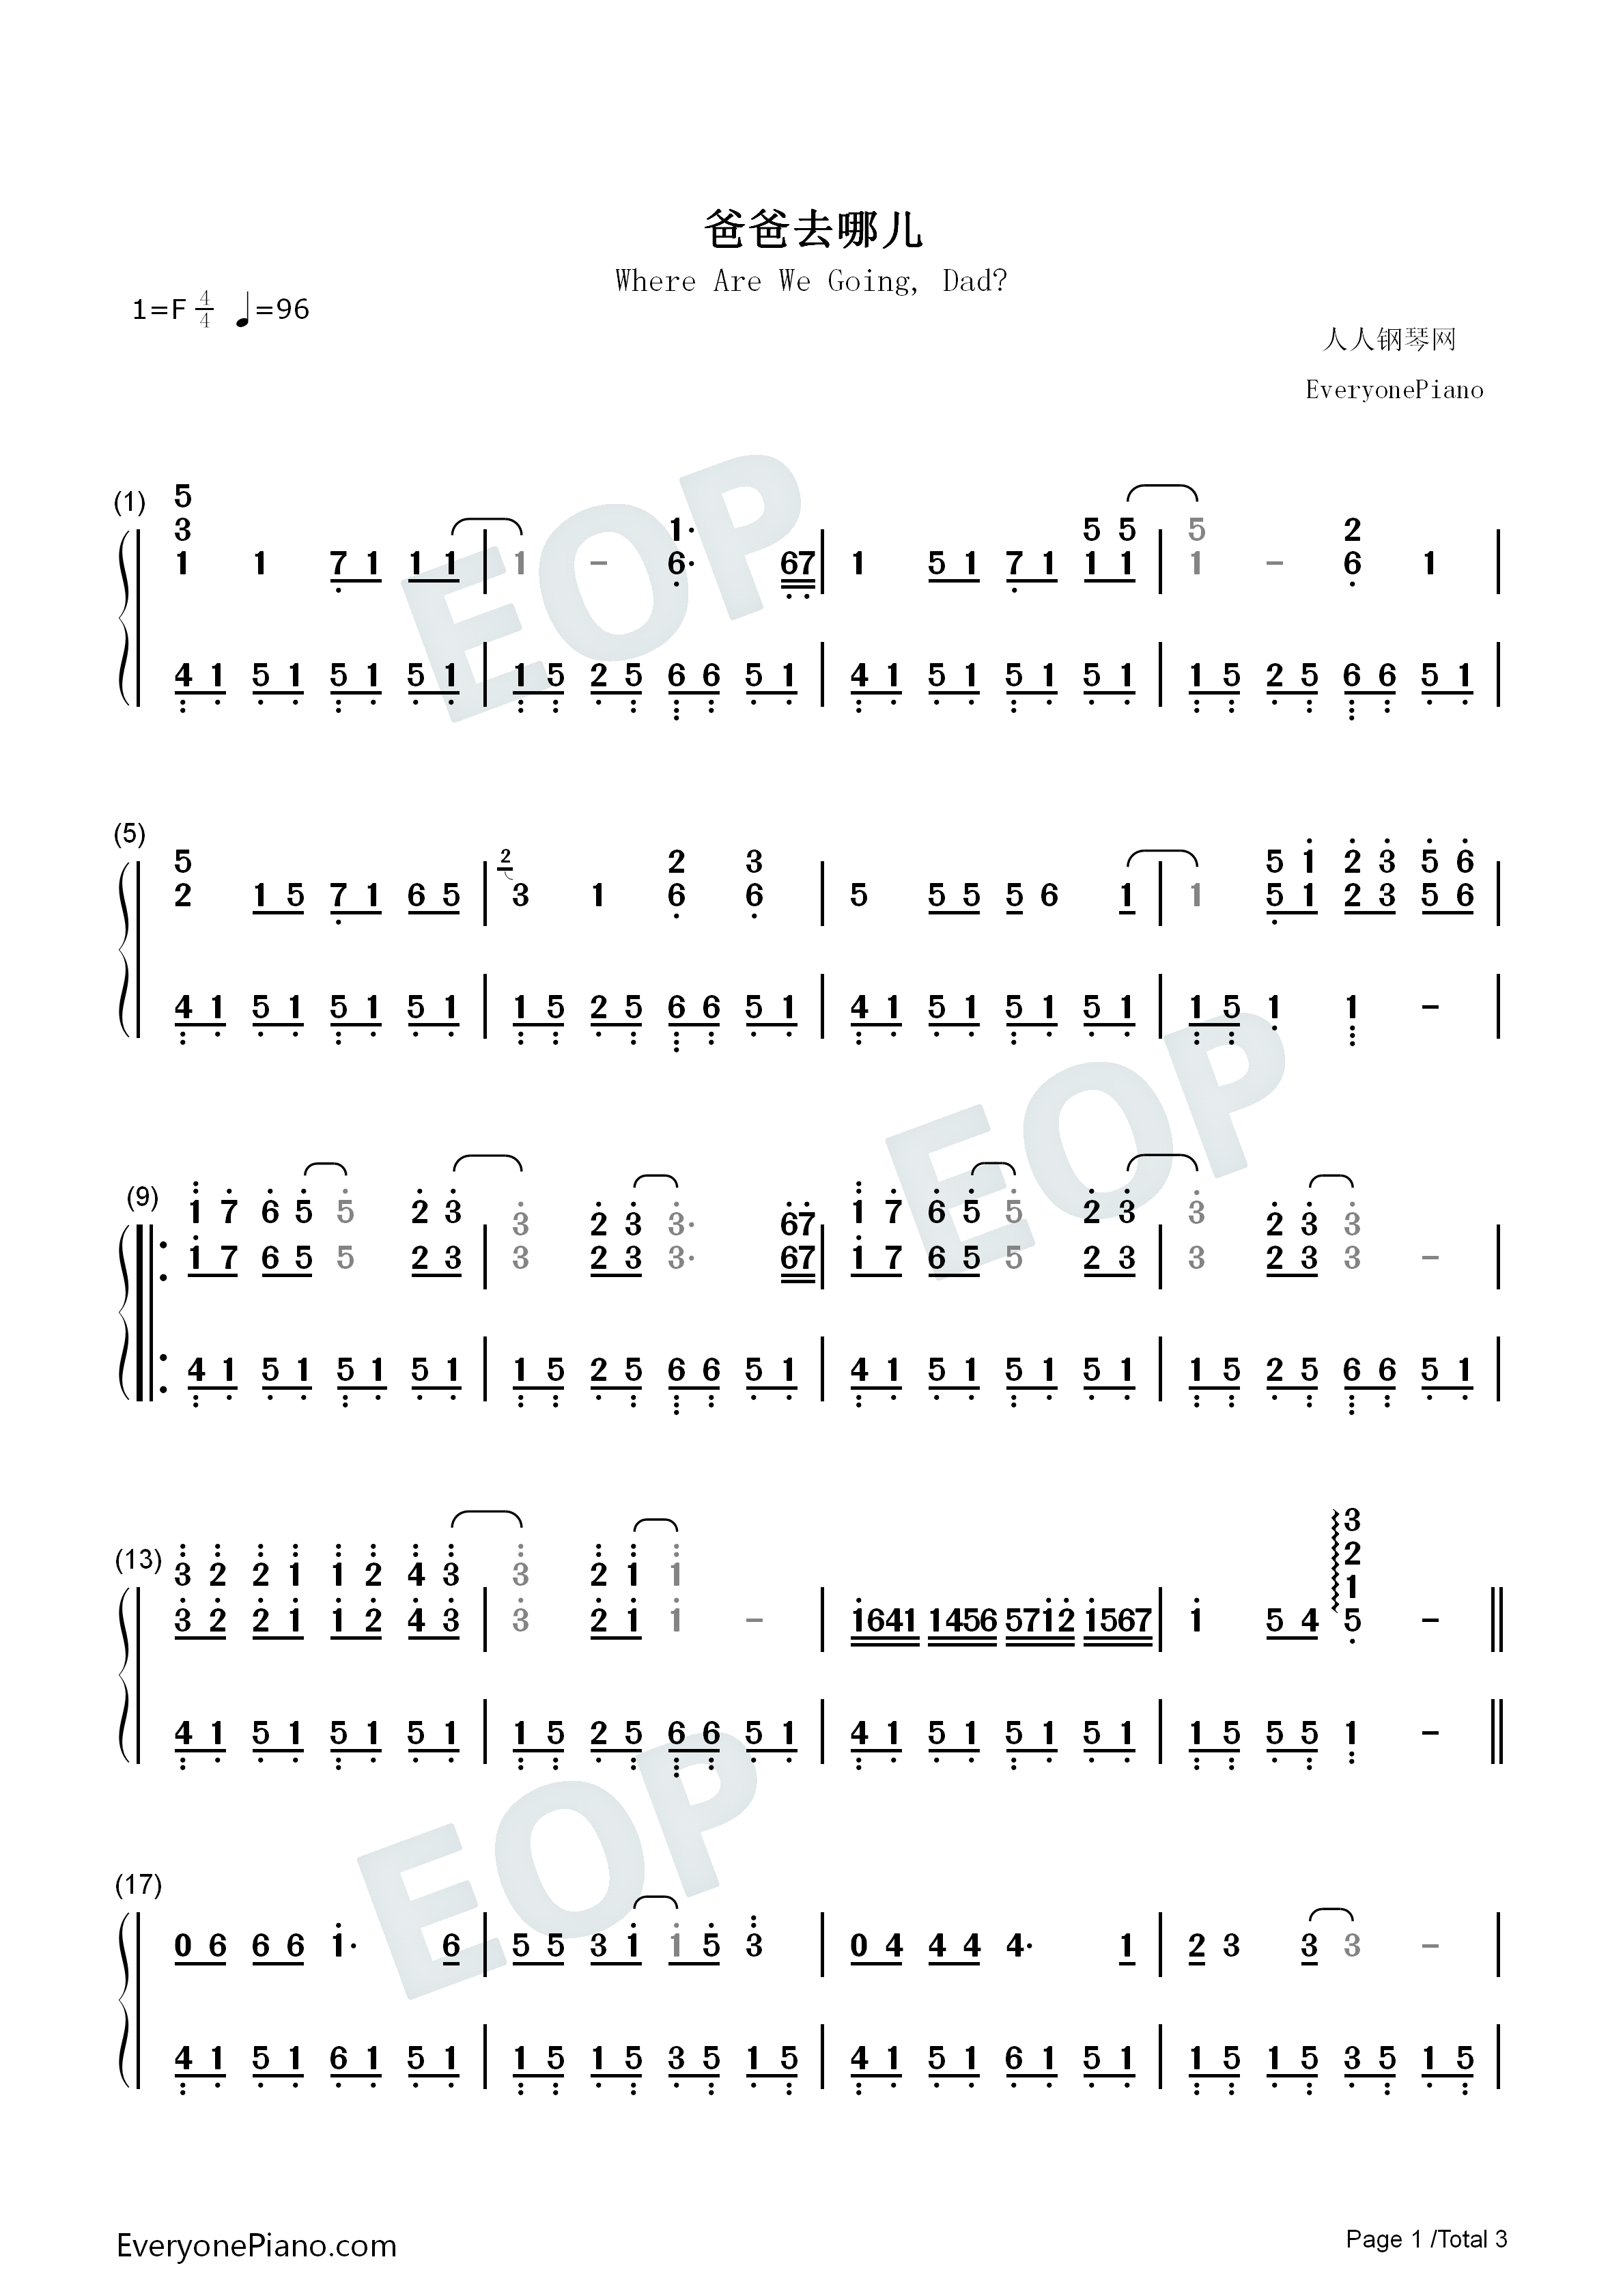 musical notation and dad s answer Musical notation and -dad s answer the city of orzo is located in central italy orzo is set on a steep hill rising from the floodplain of the river aaron.